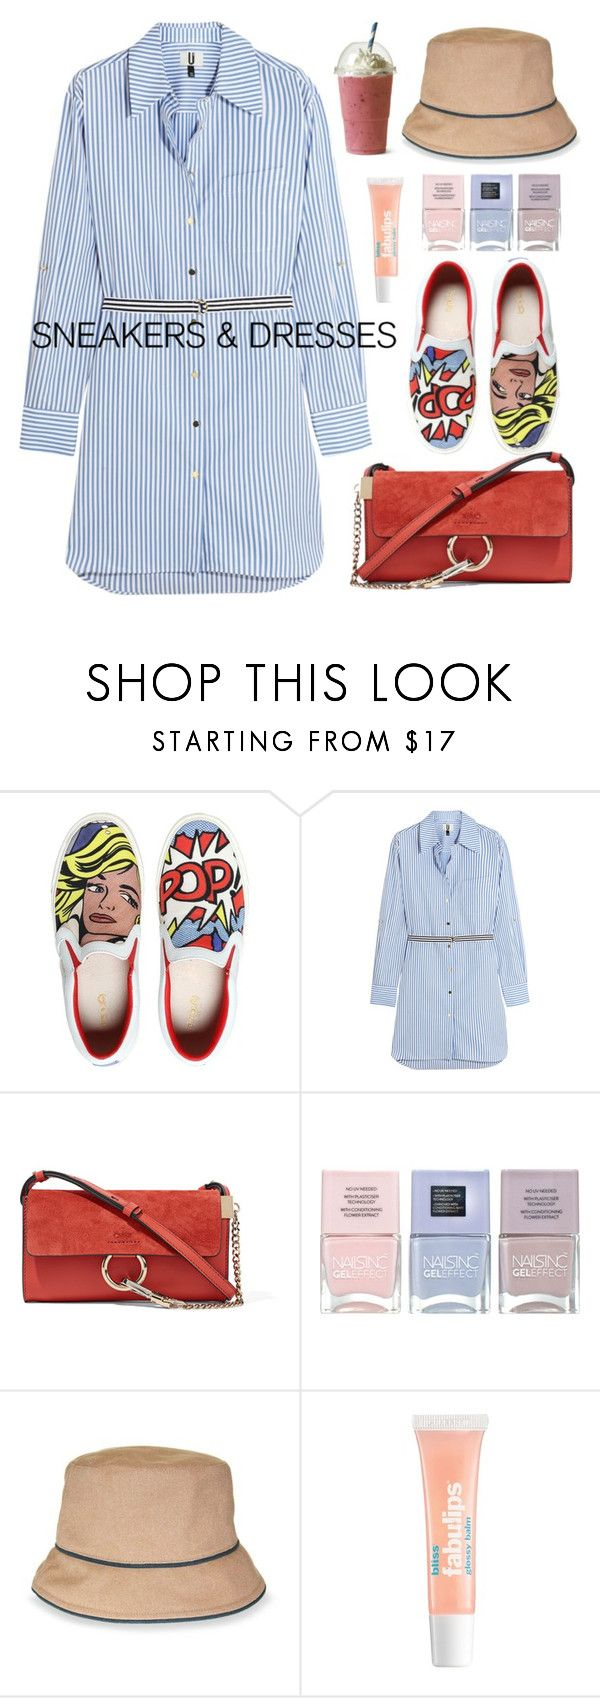 """88. Easy Fashion"" by milva-bg ❤ liked on Polyvore featuring MOA Master of Arts, Topshop Unique, Chloé, Nails Inc., Nine West and Bliss"